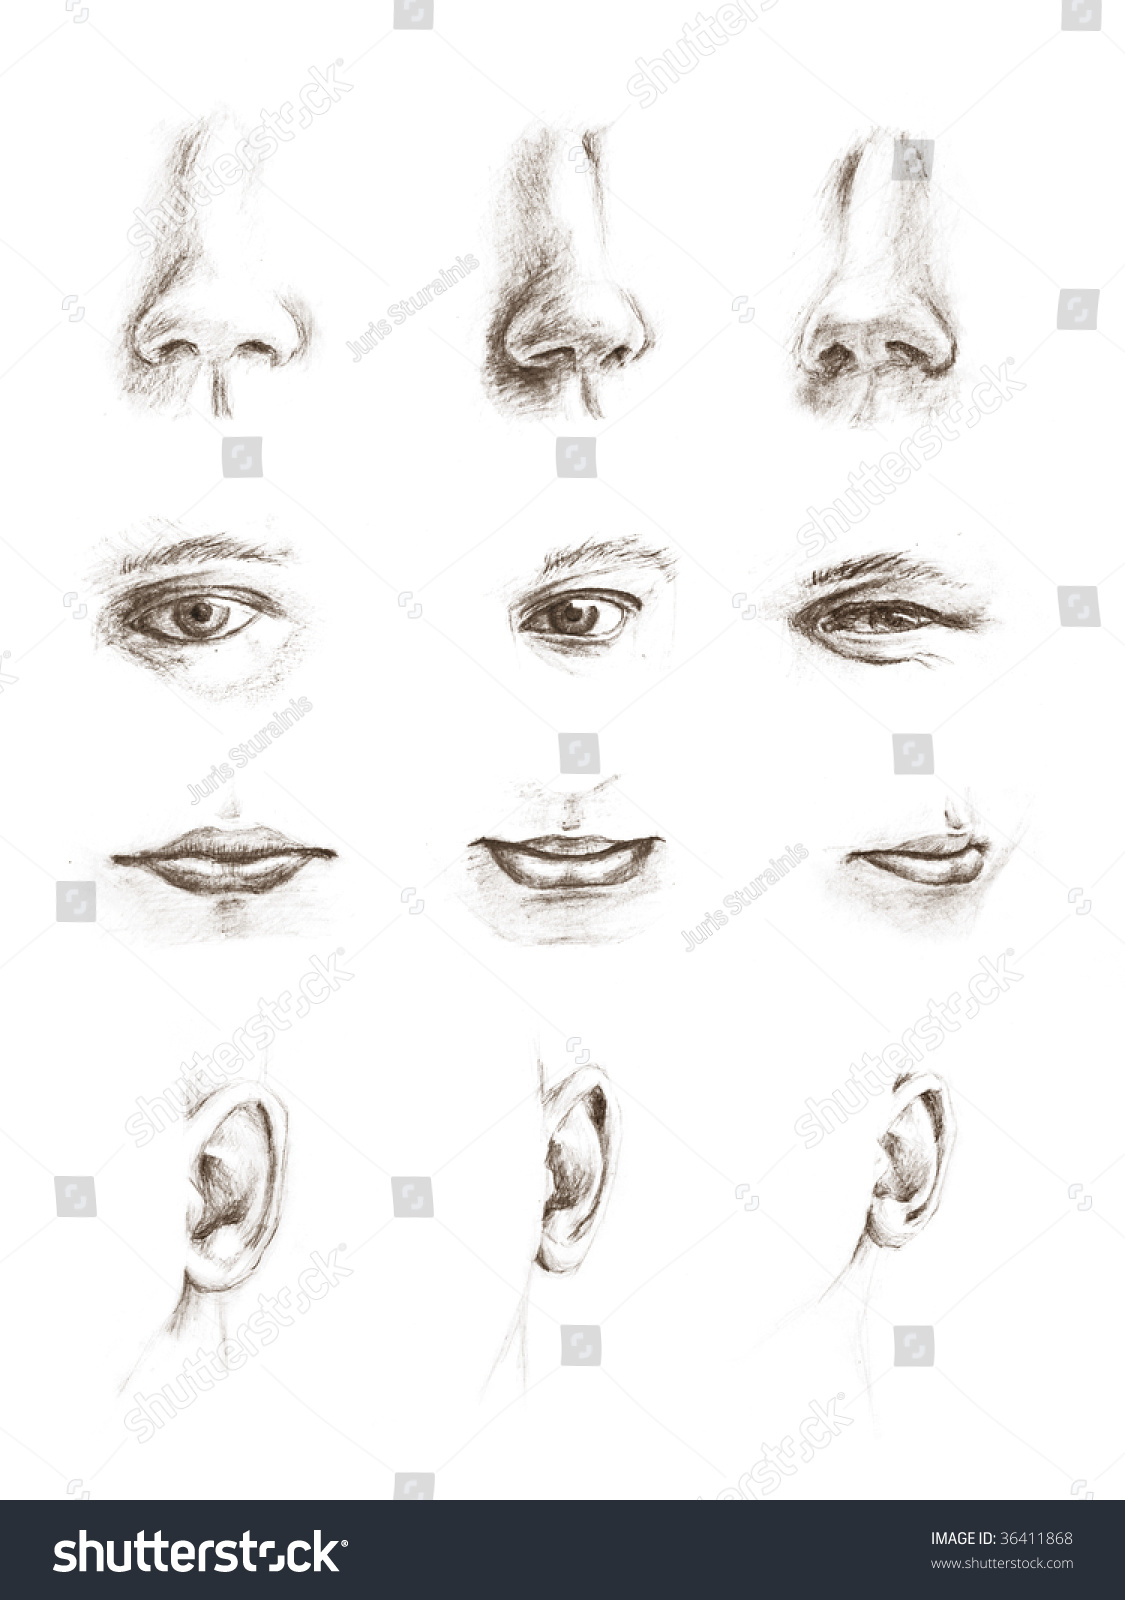 Hand Drawn Pencil Sketches Of Eyes, Ears, Lips And Noses